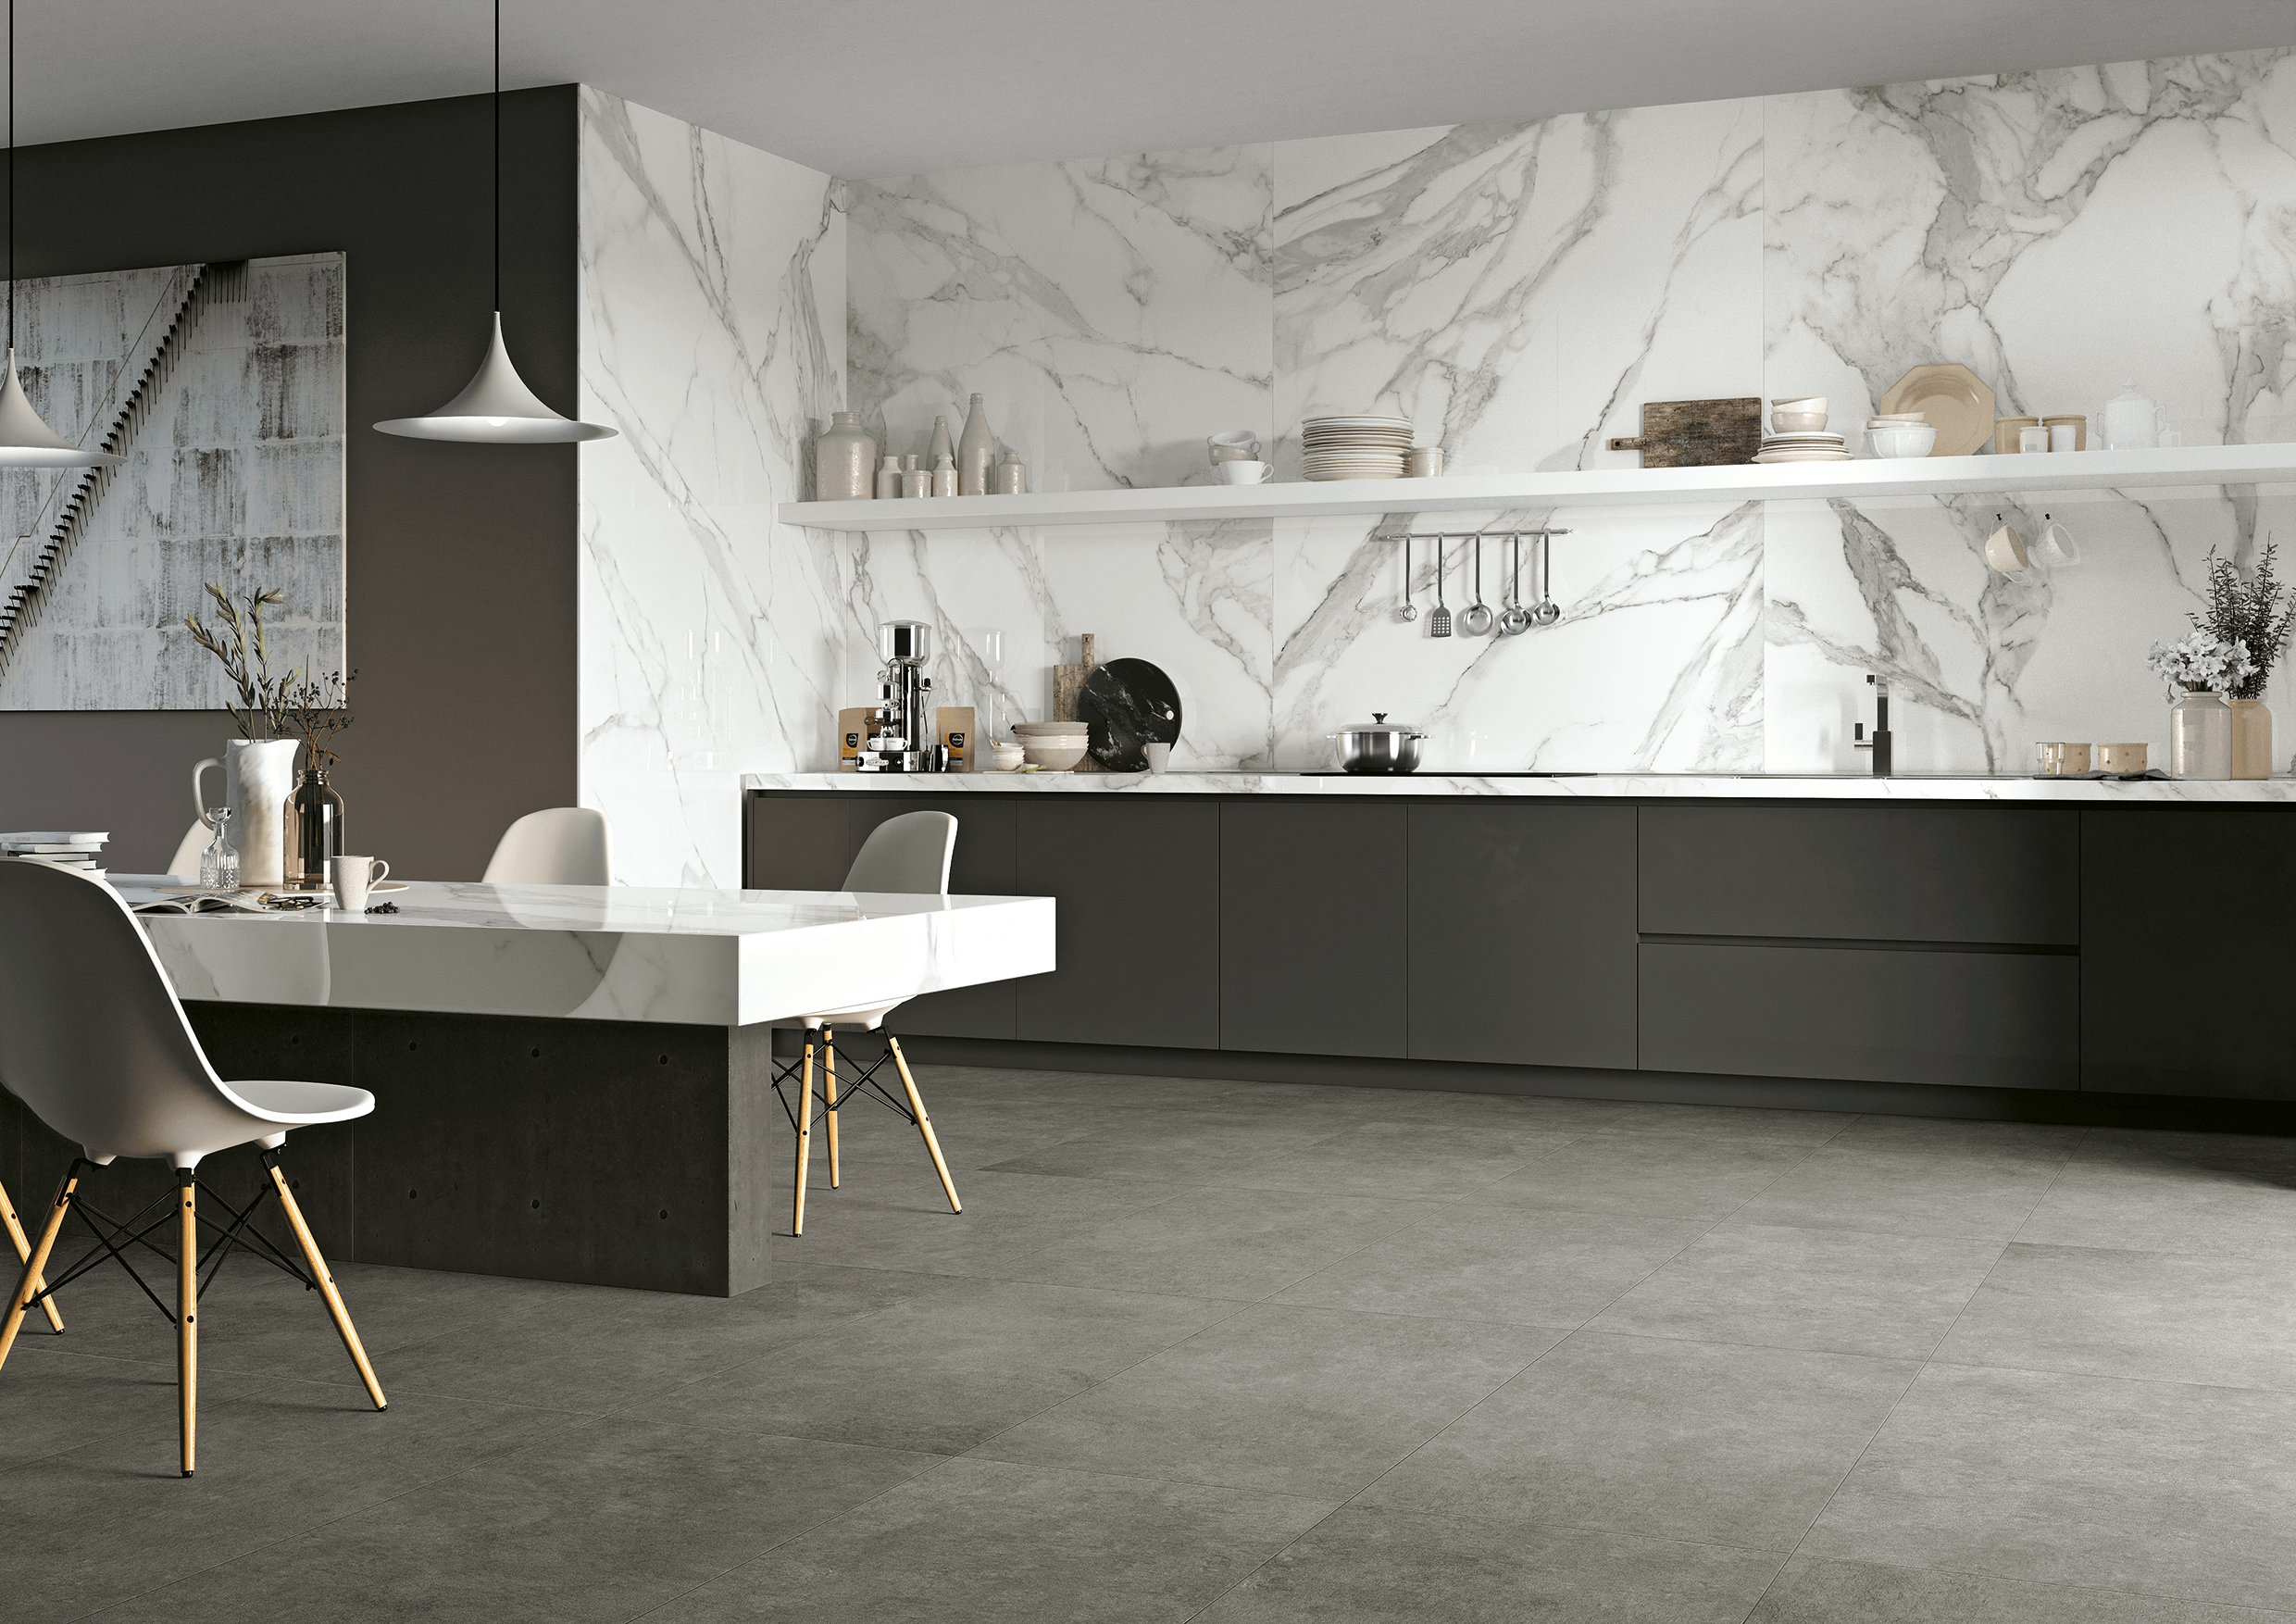 Mirage_GrandiLastre_Kitchen_JW12_NM02_Bianco_Lunensis.png